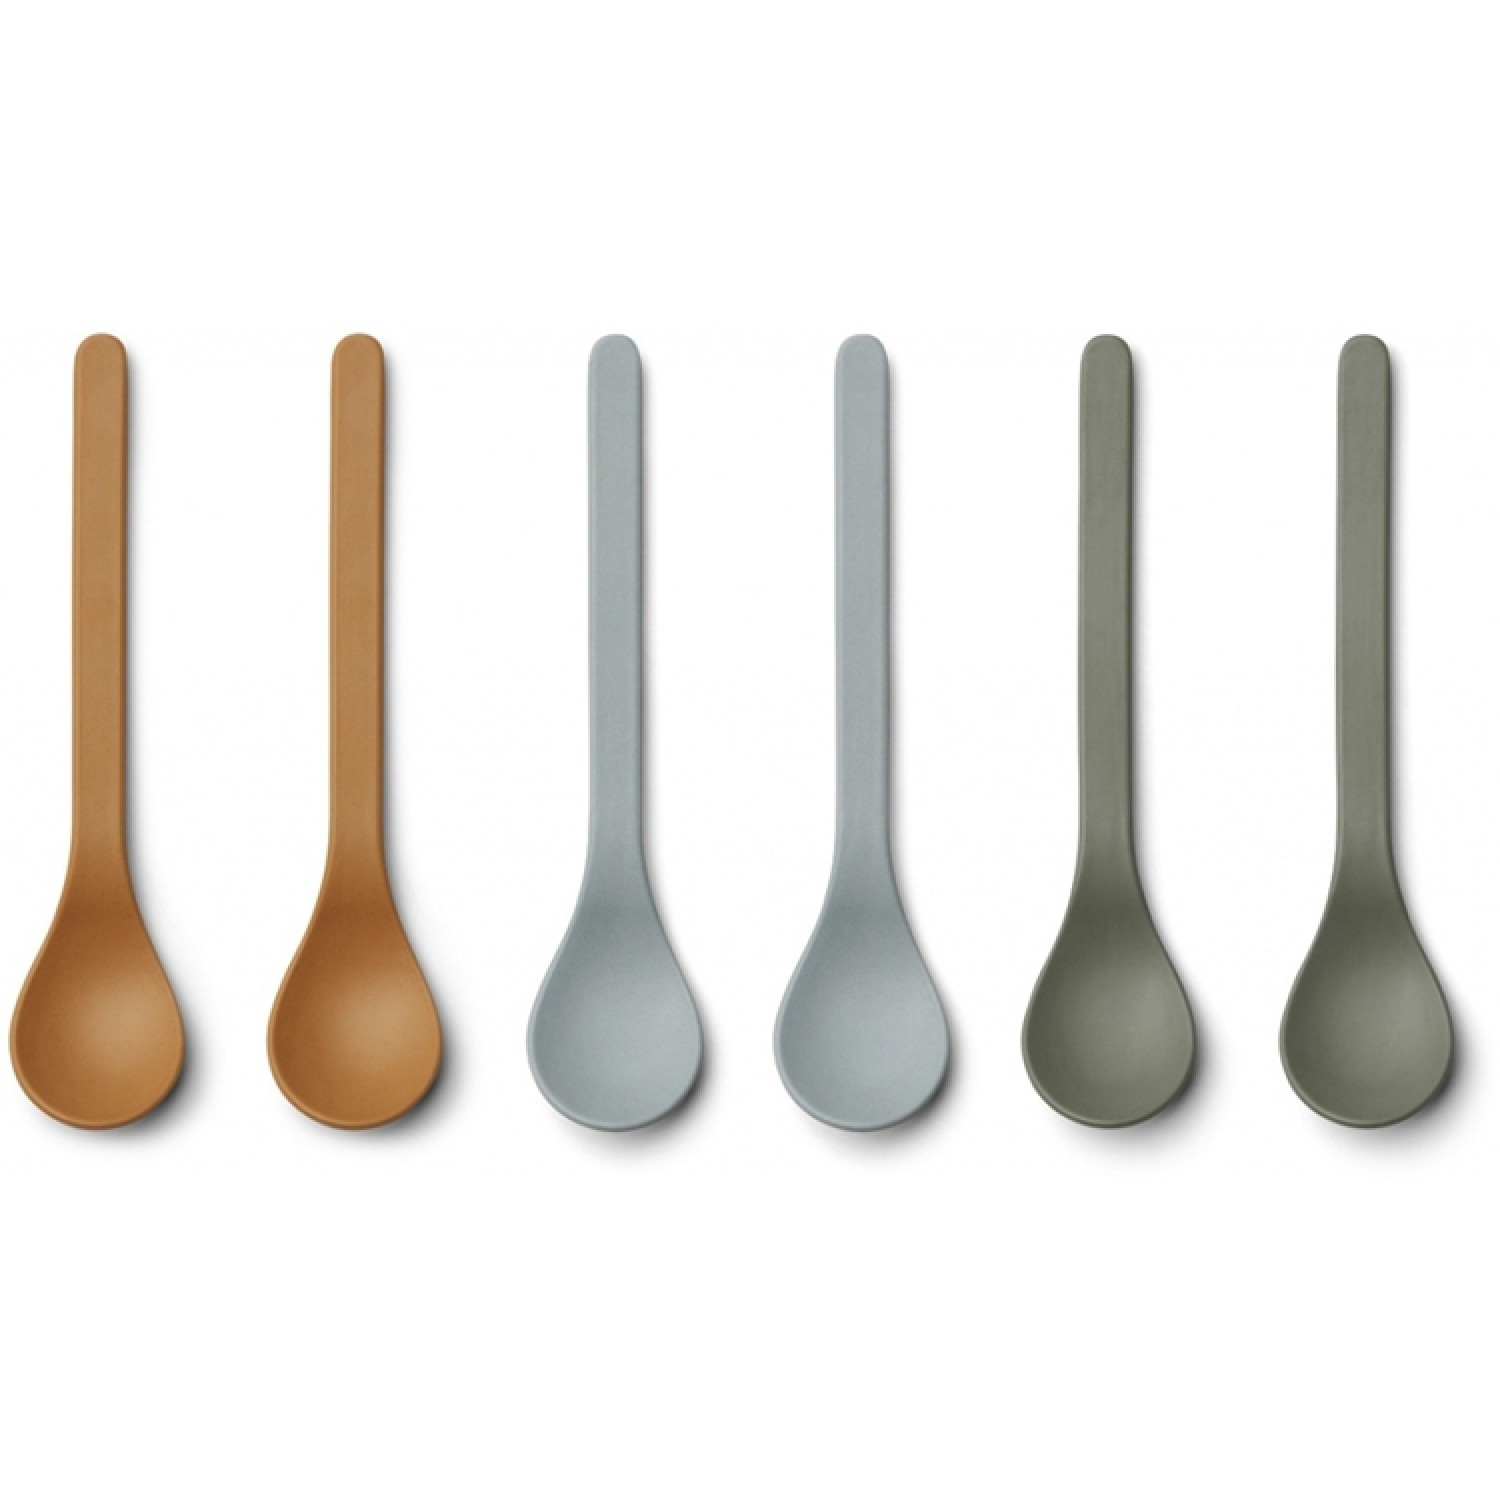 Bamboo Spoon Etsu - 6 Pack |Blue Multi Mix